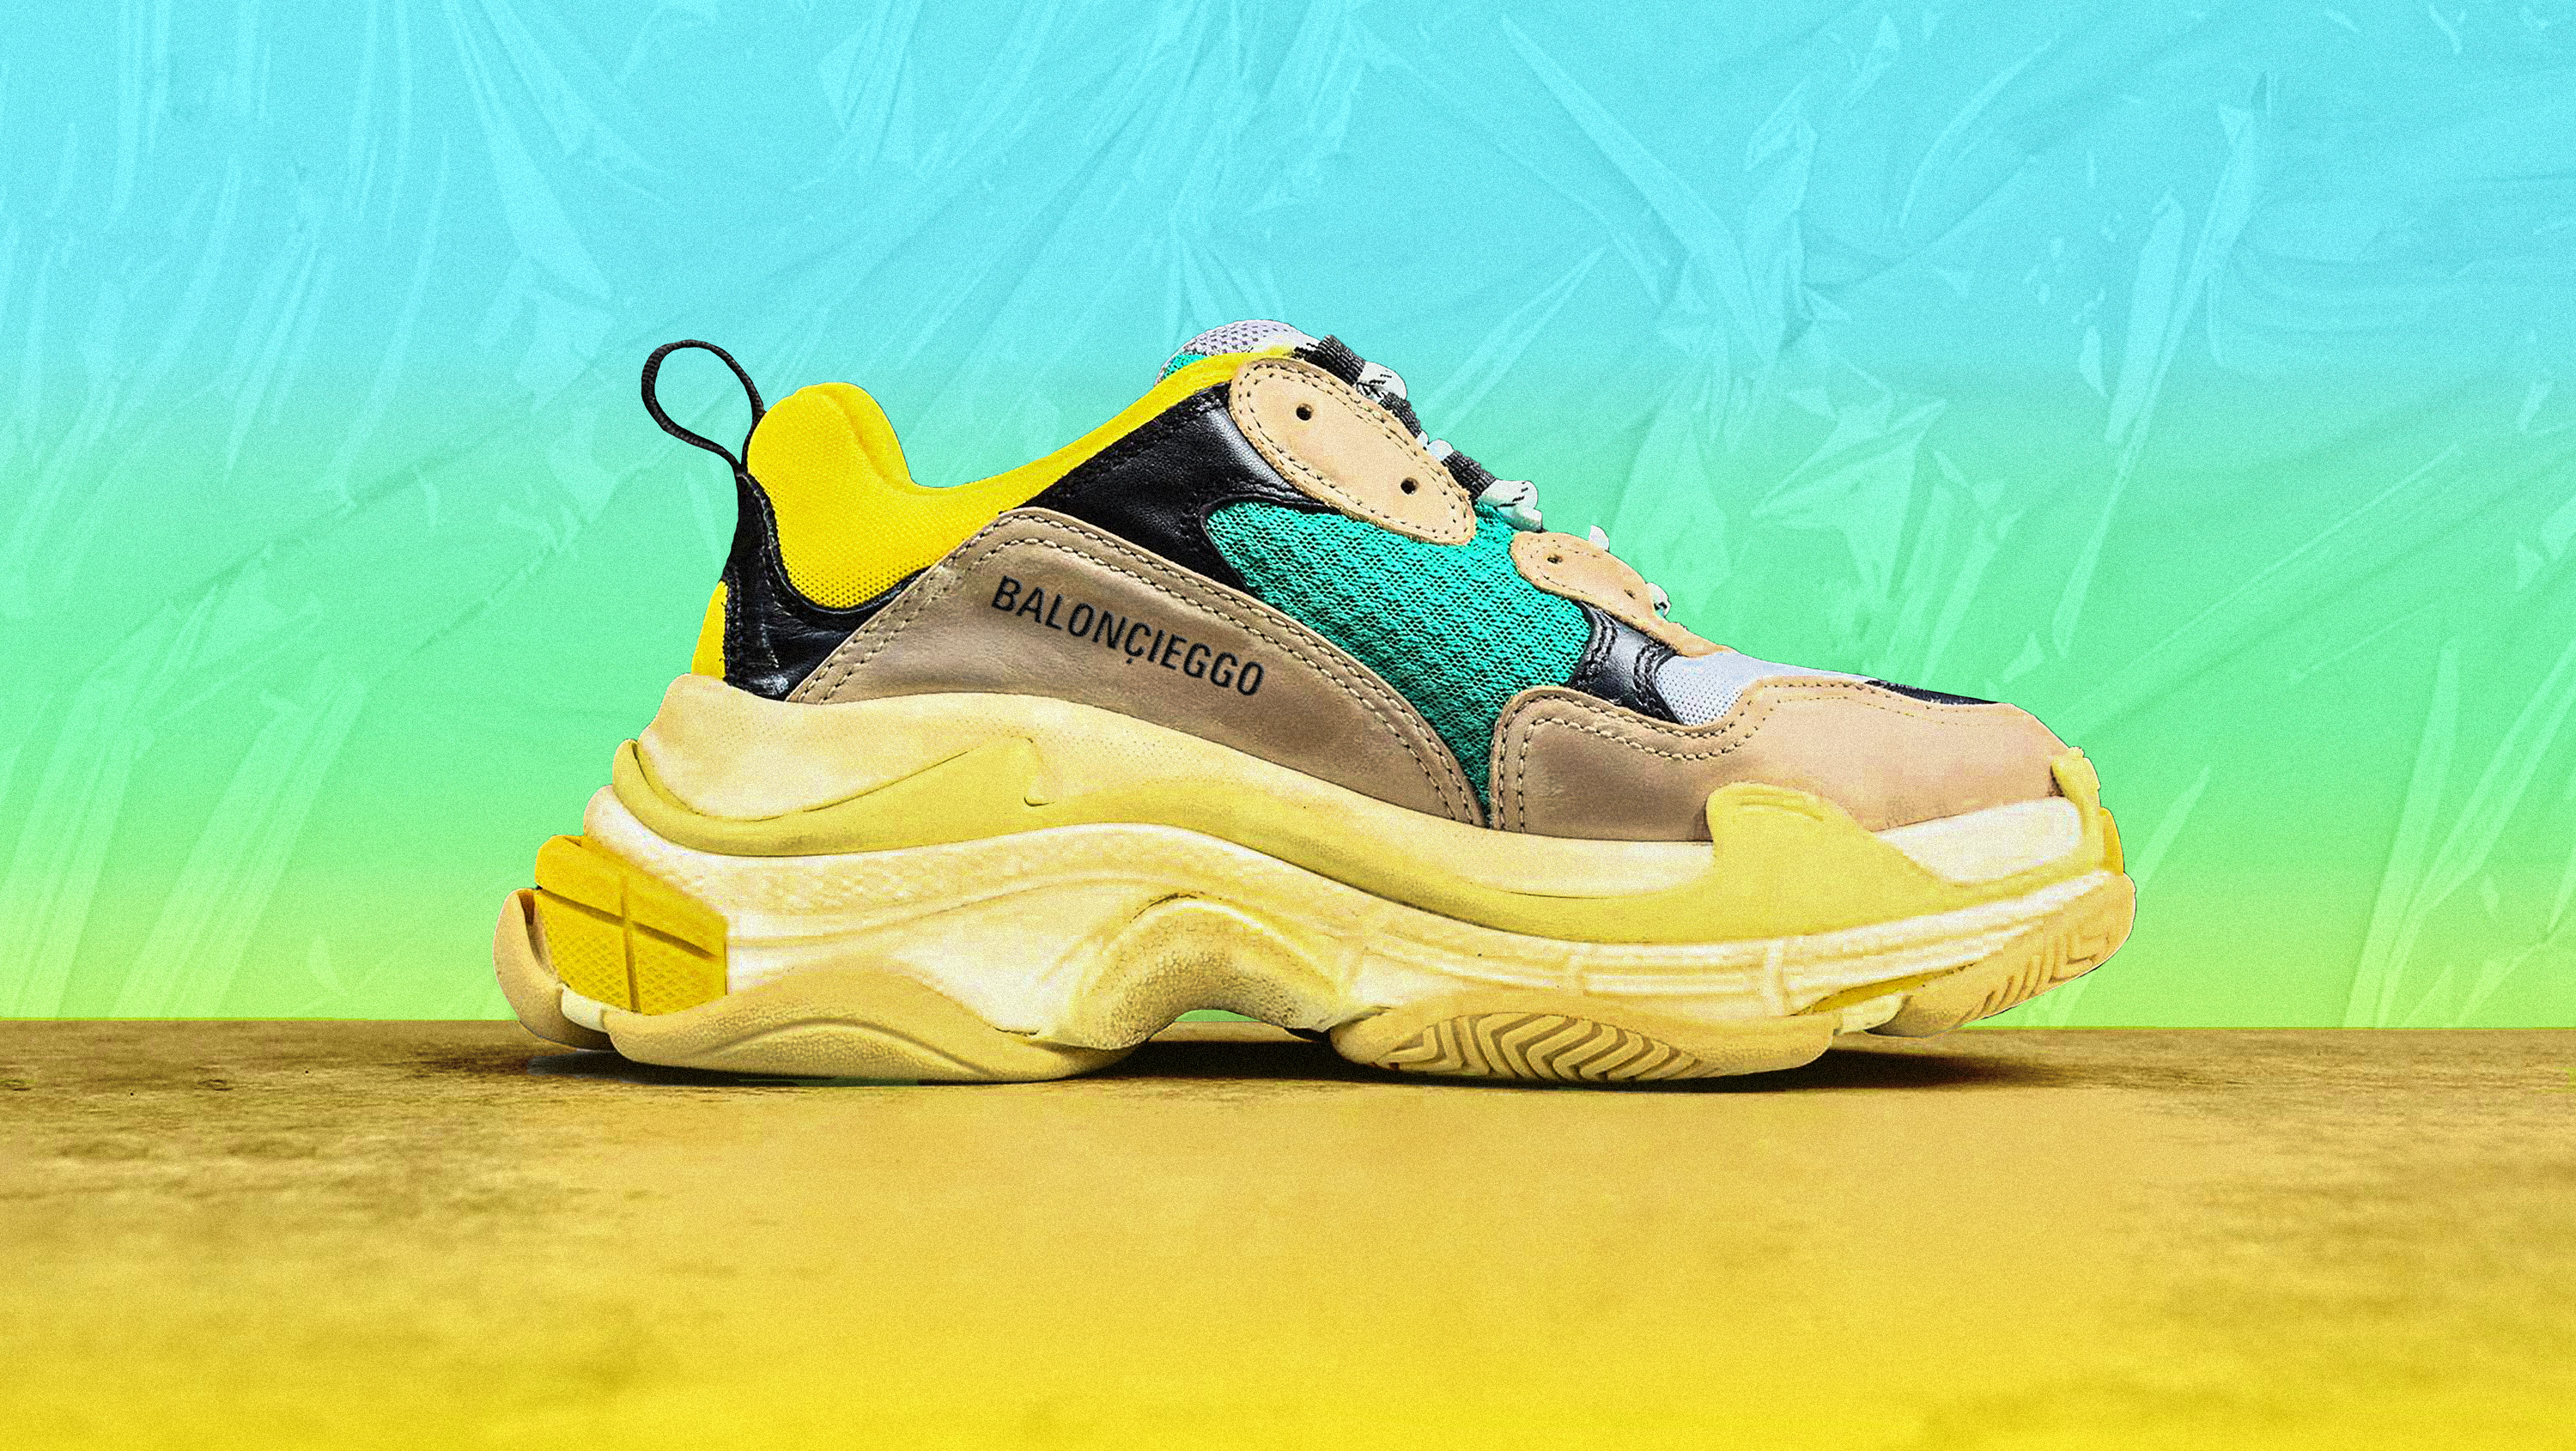 4bc4f40bbdf I Bought Fake Balenciaga Triple S Sneakers and Boy Do They...Smell Weird  -  GARAGE